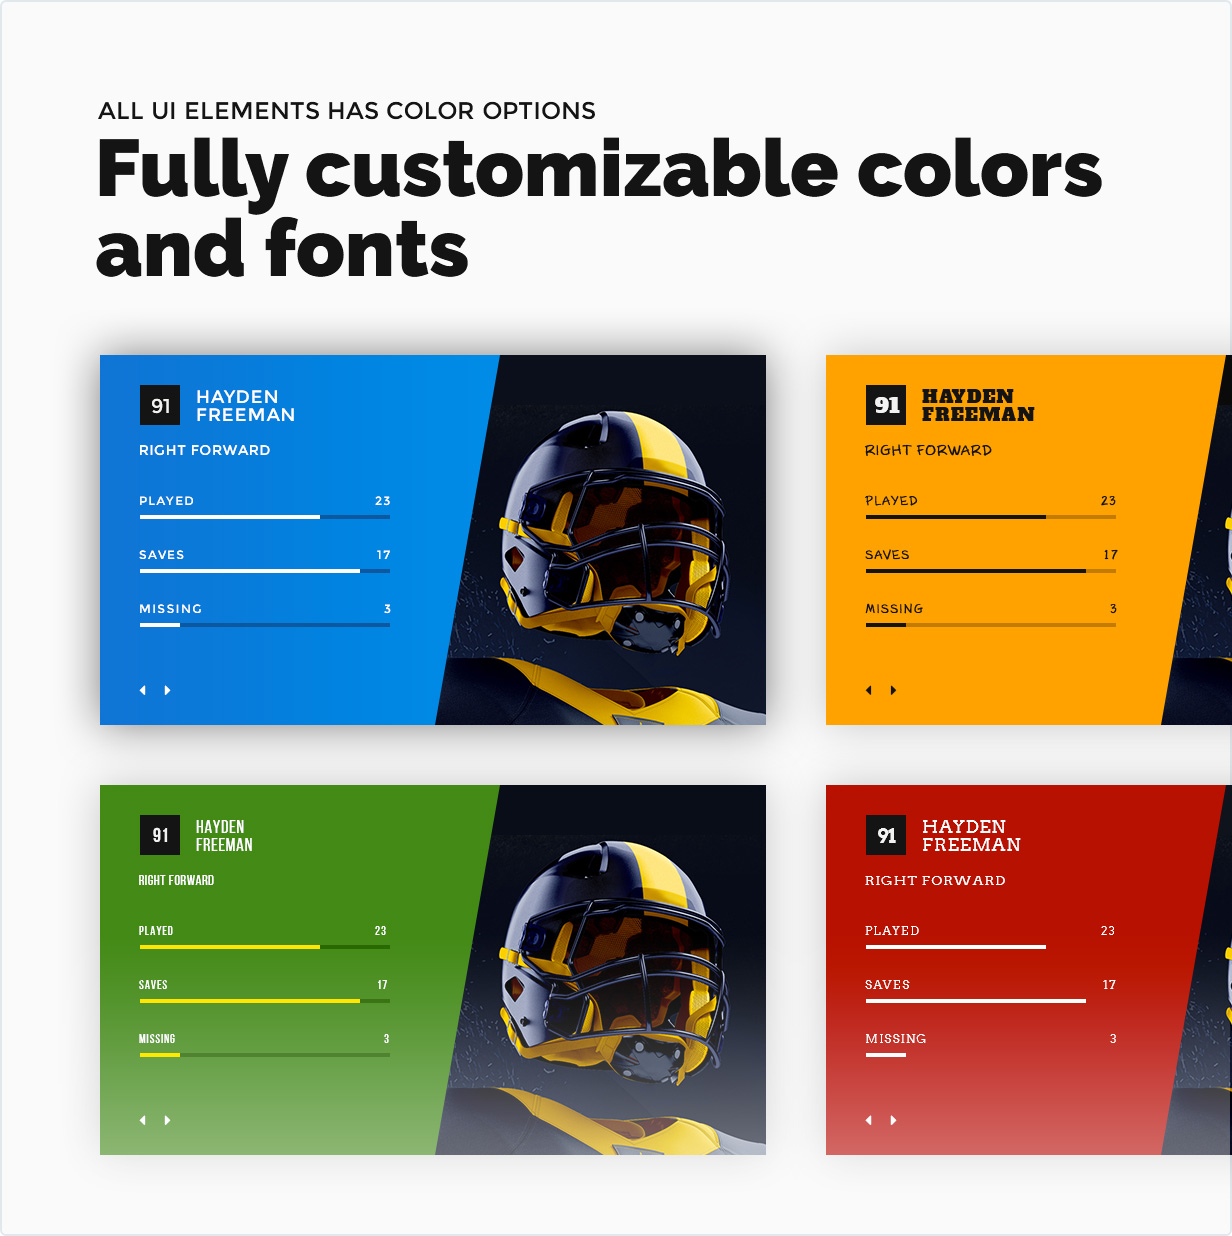 Fully customizable colors and fonts